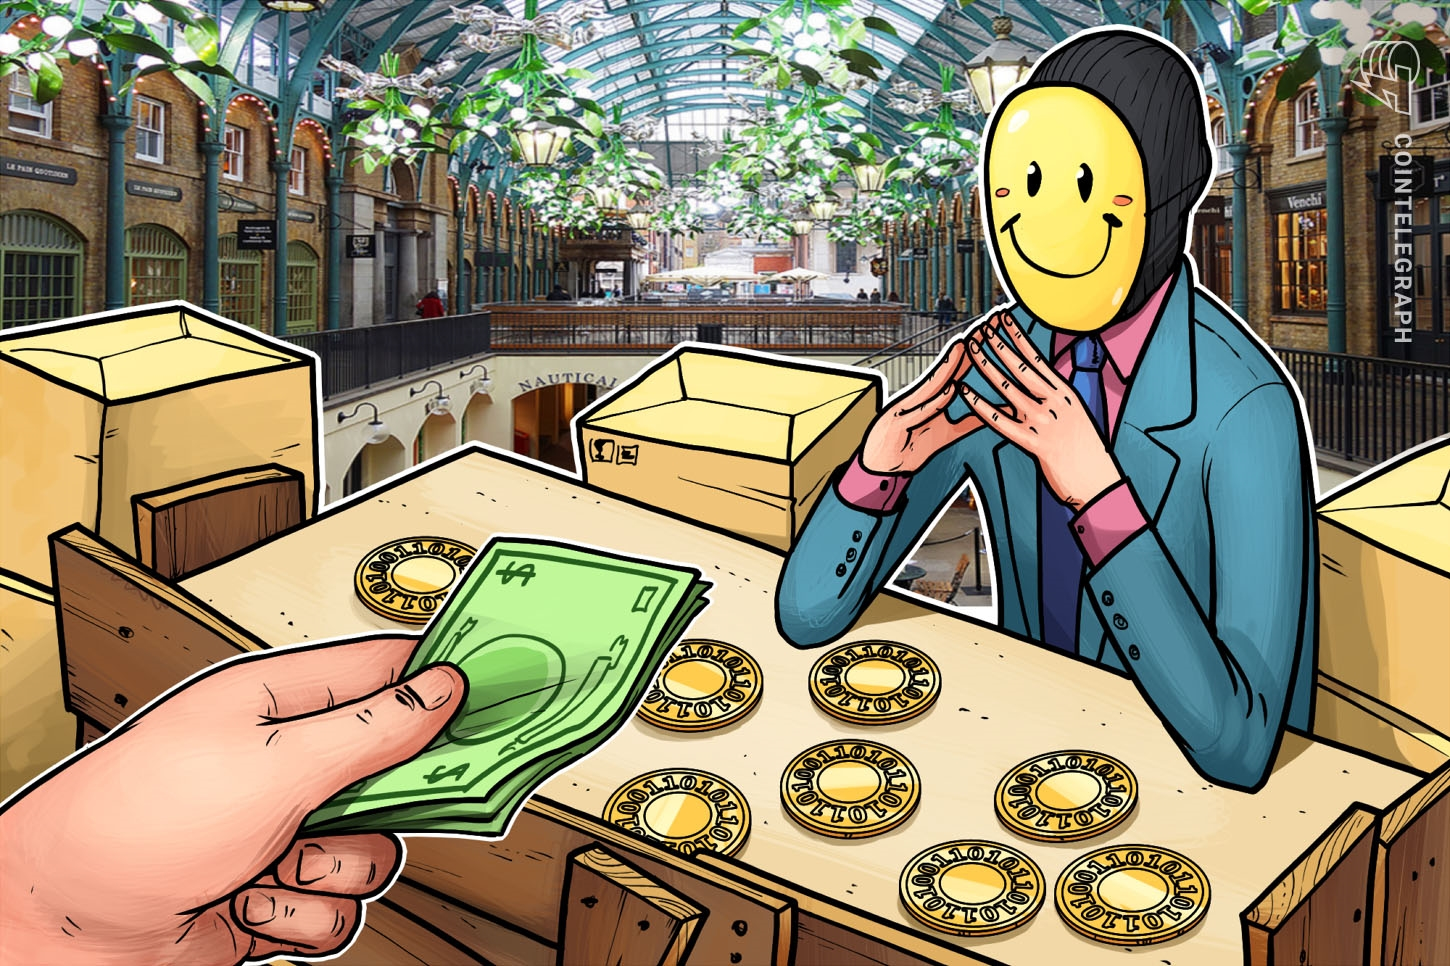 Australian Crypto Exchange Exposes Personal Data of 270K Users – Accu-rate